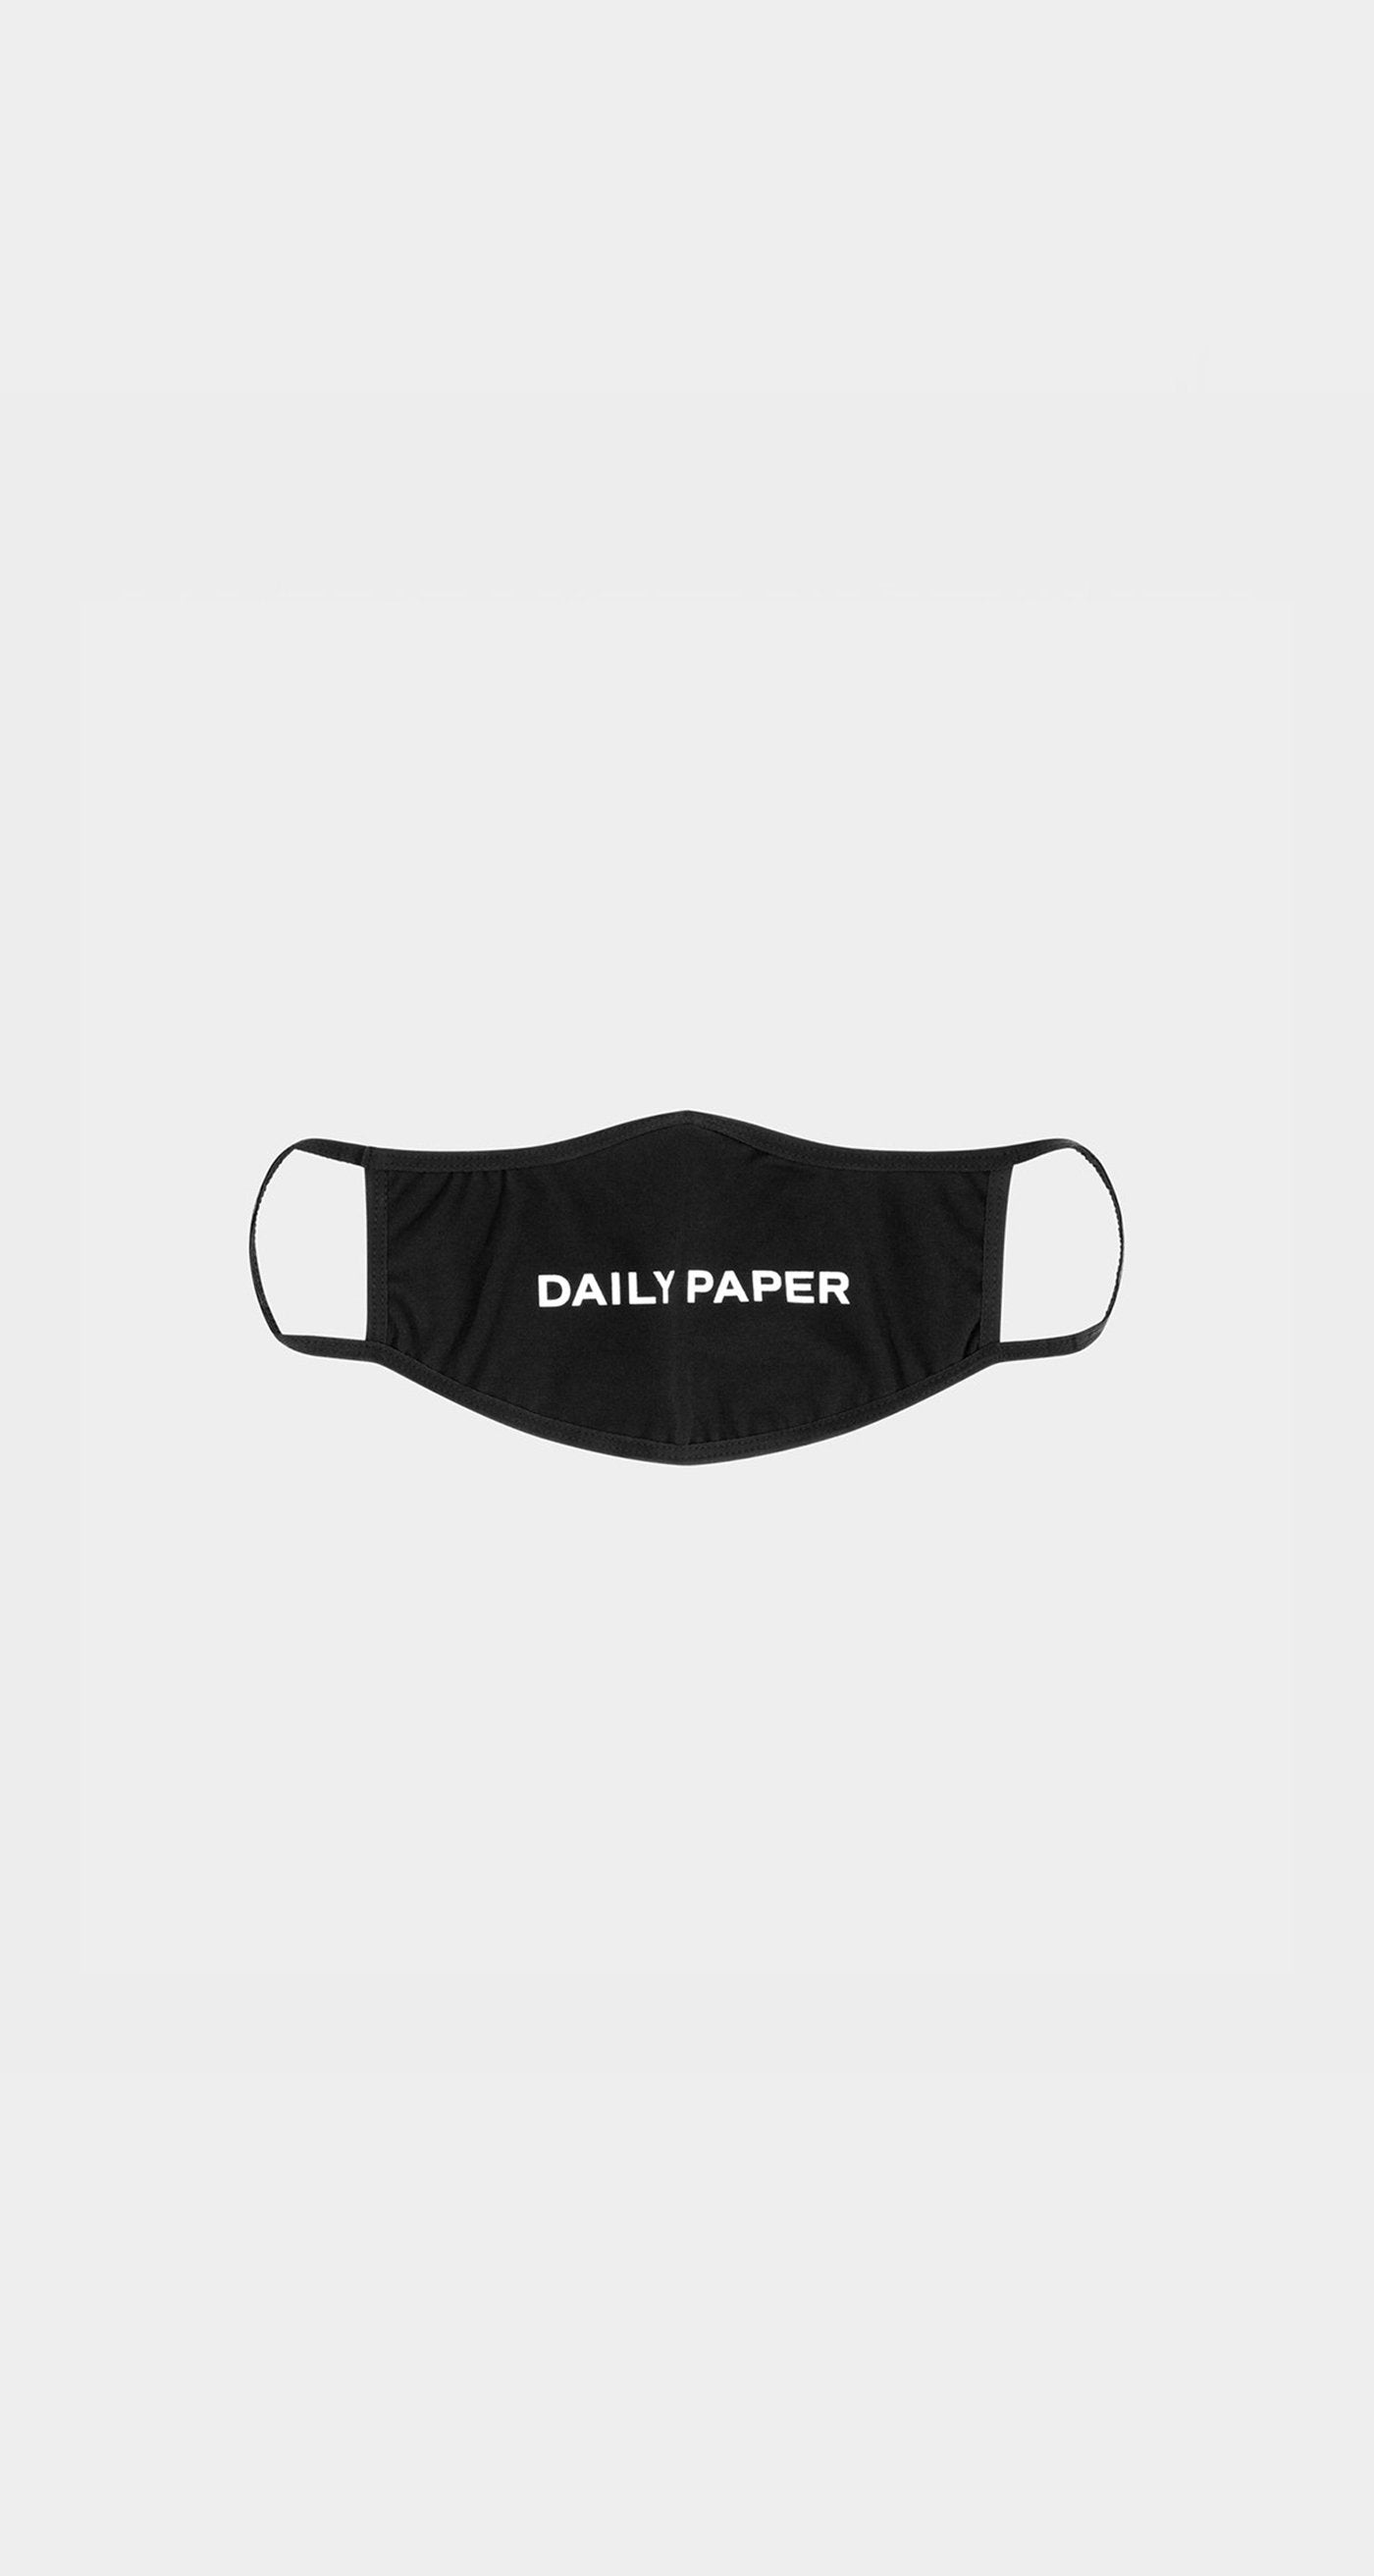 Daily Paper - Daily Paper Shield Logo Facemask